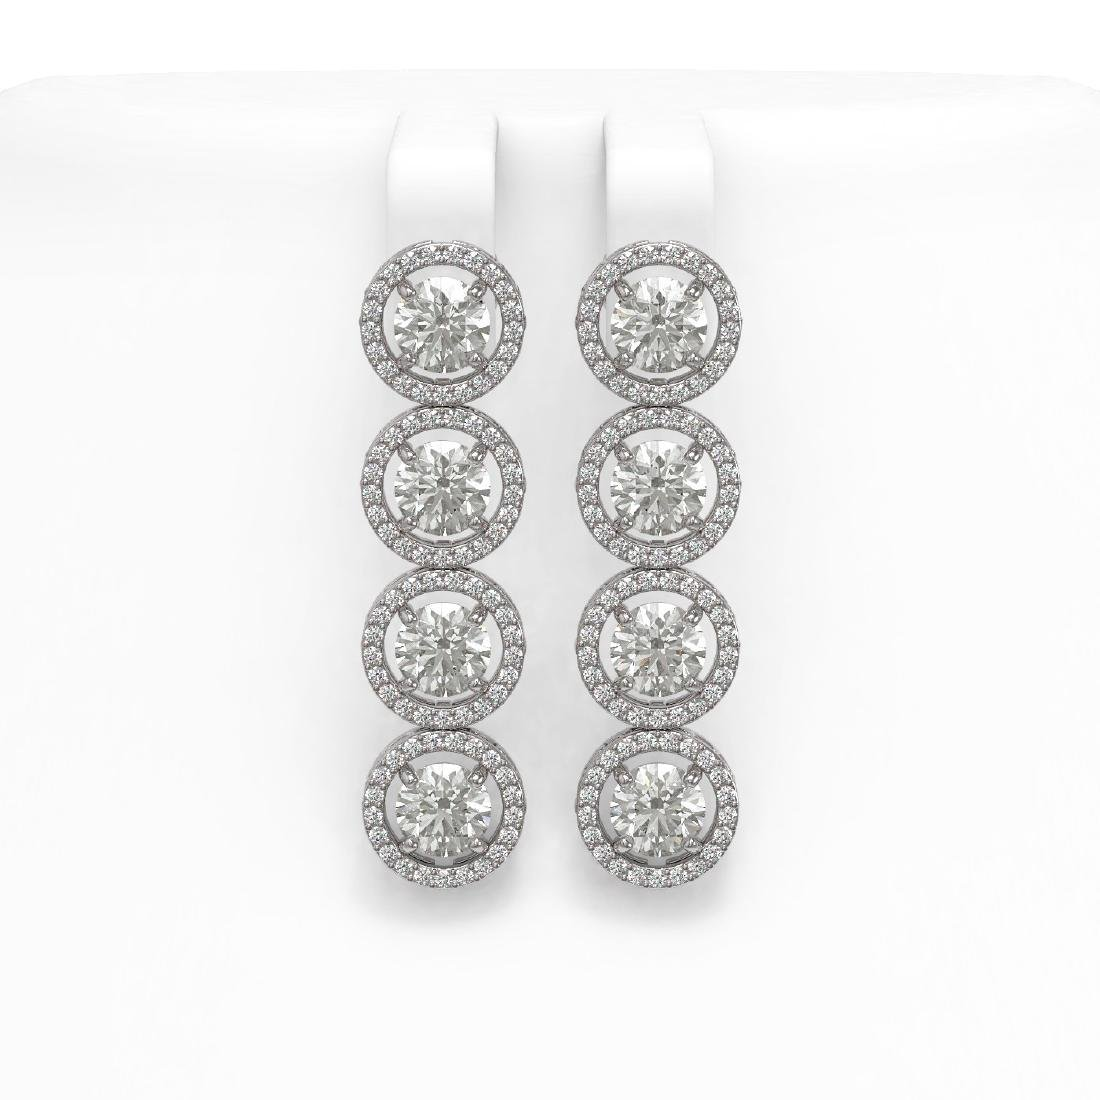 6.14 CTW Diamond Designer Earrings 18K White Gold